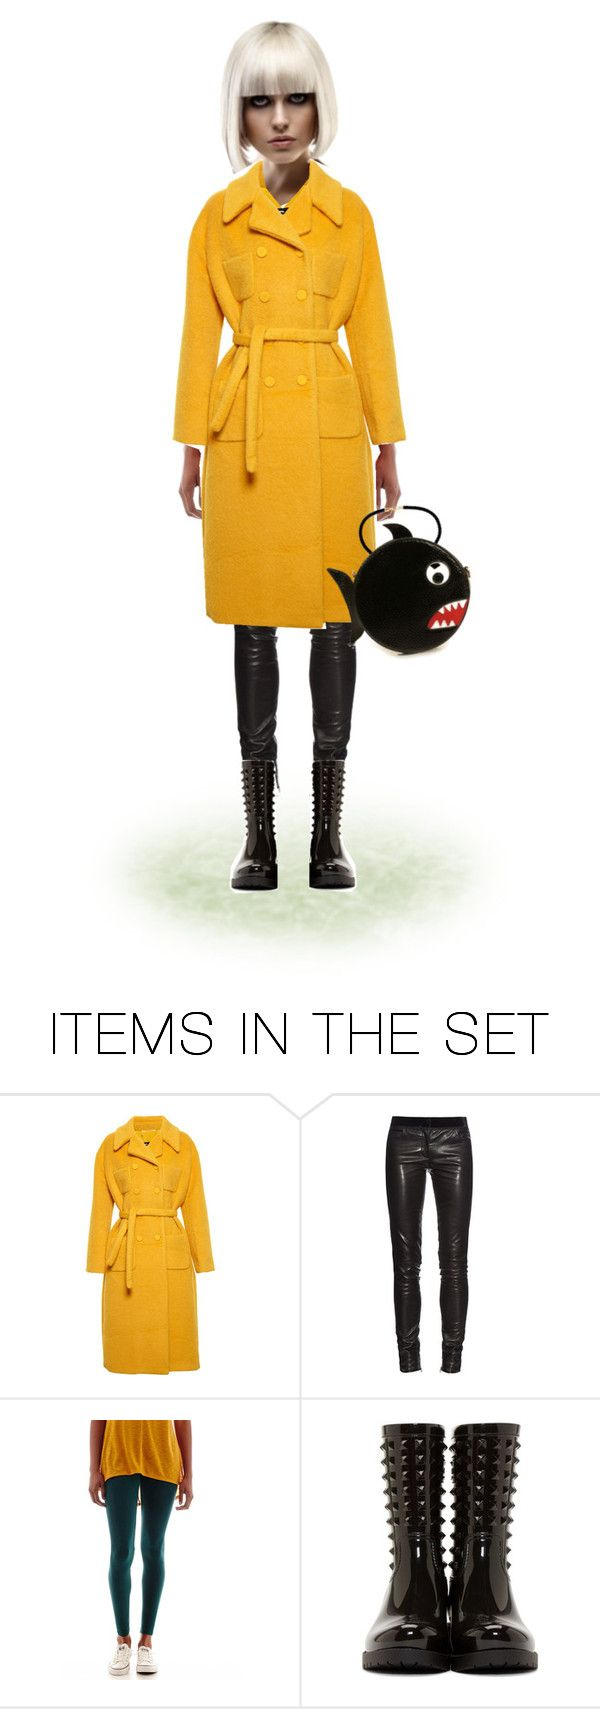 """""""gonefishing"""" by jtimea ❤ liked on Polyvore featuring art"""